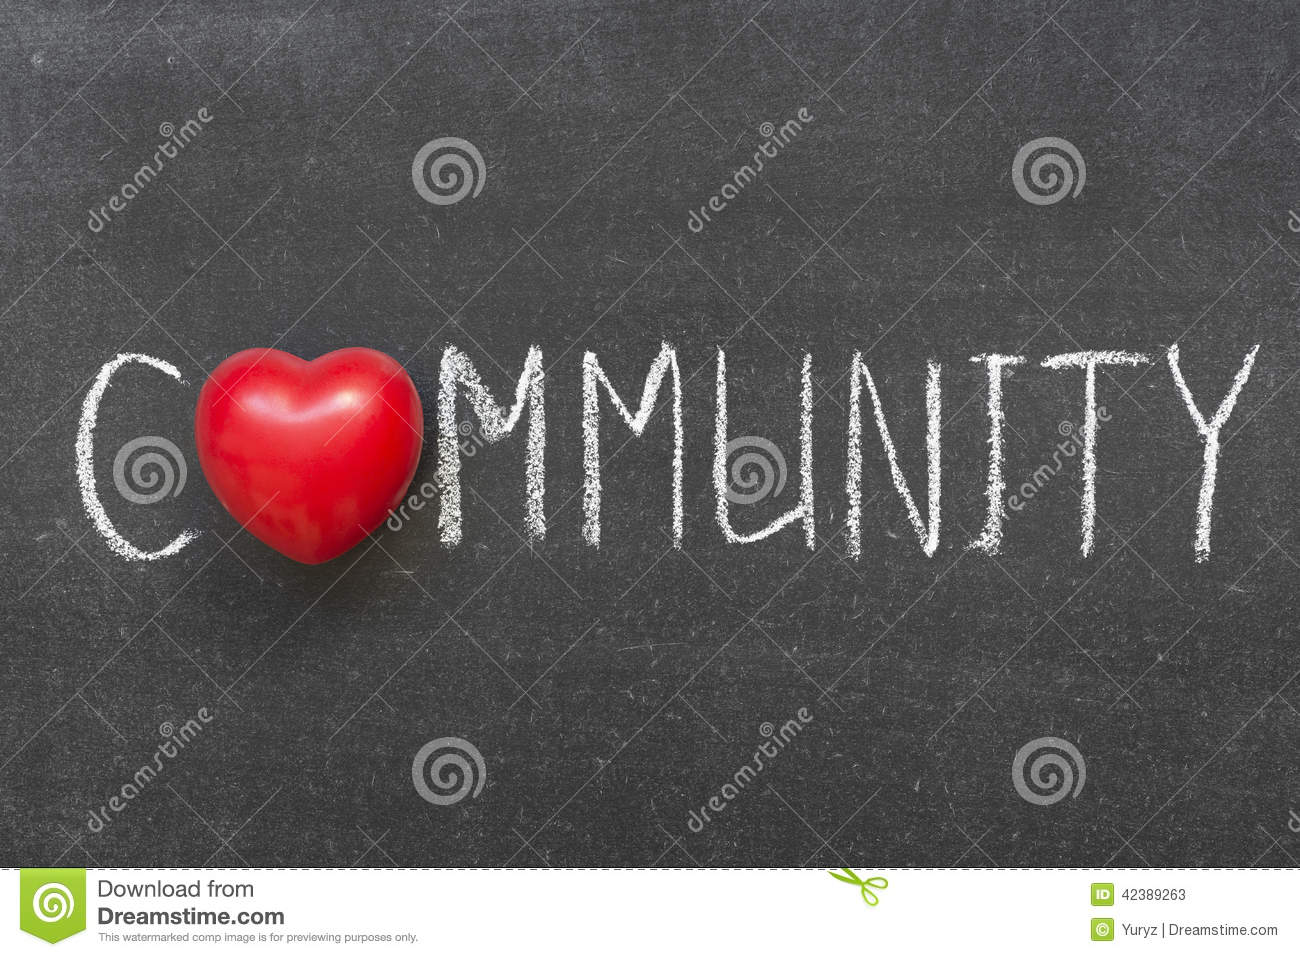 Stock Photo: Community: www.dreamstime.com/stock-photo-community-word-handwritten...